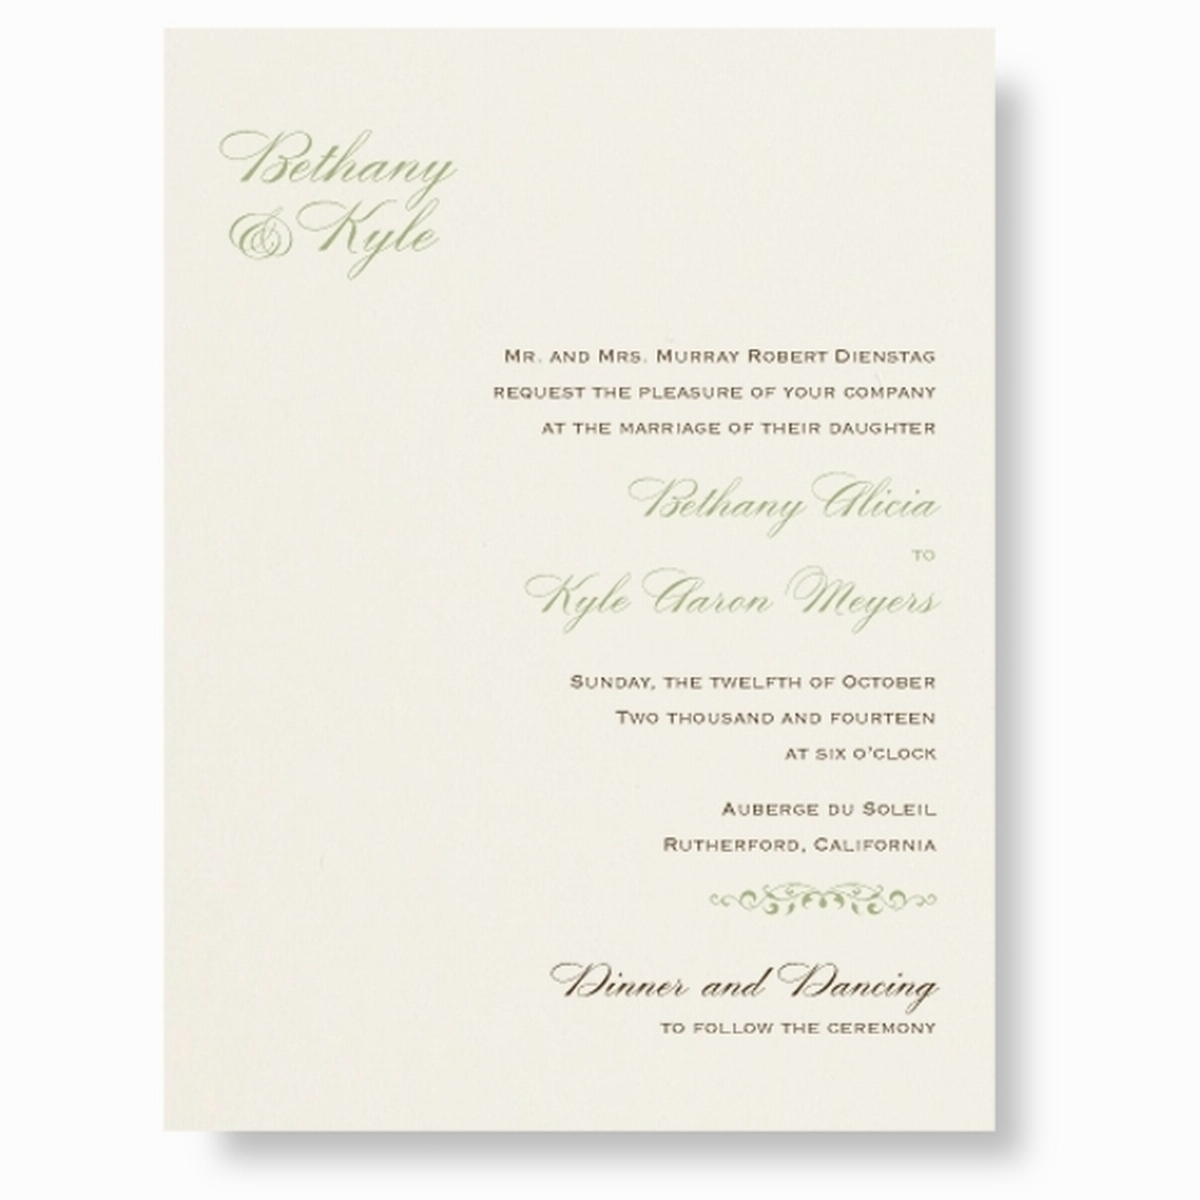 Wedding Invitations Ireland & Wedding Stationery - Thermography Opal ...